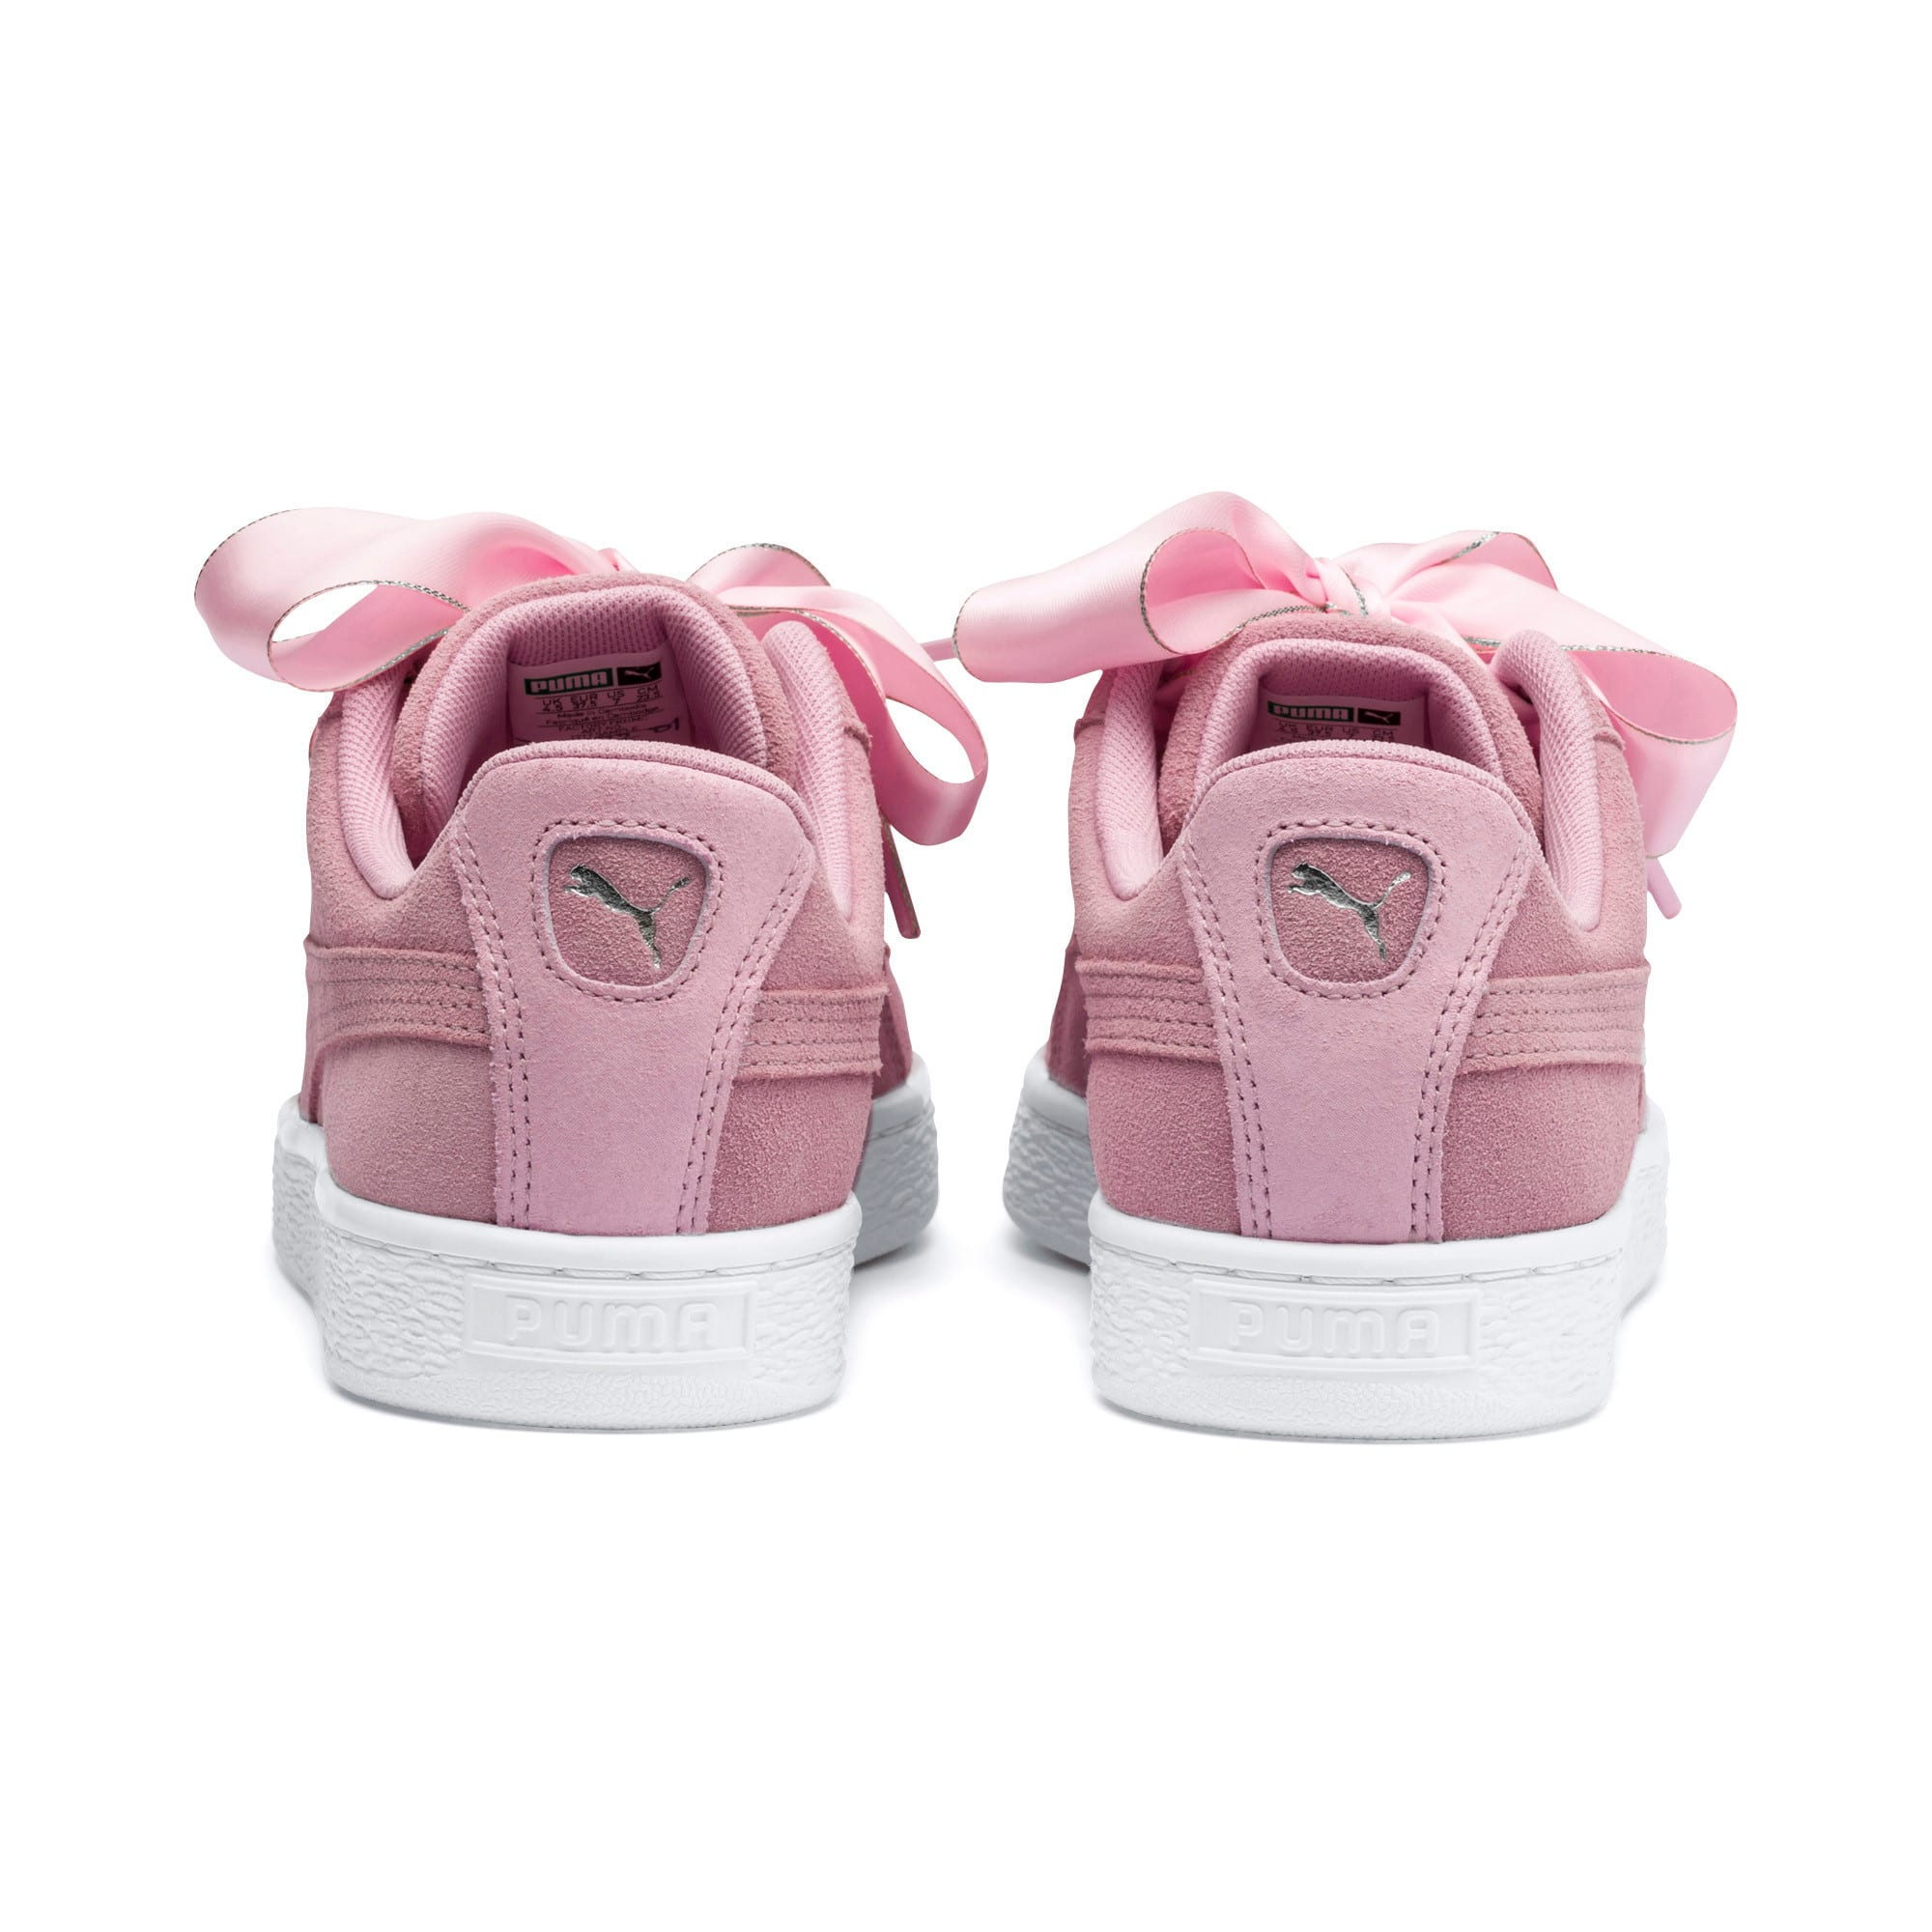 innovative design 4bfe0 a2eb1 Suede Heart Galaxy Women's Sneakers